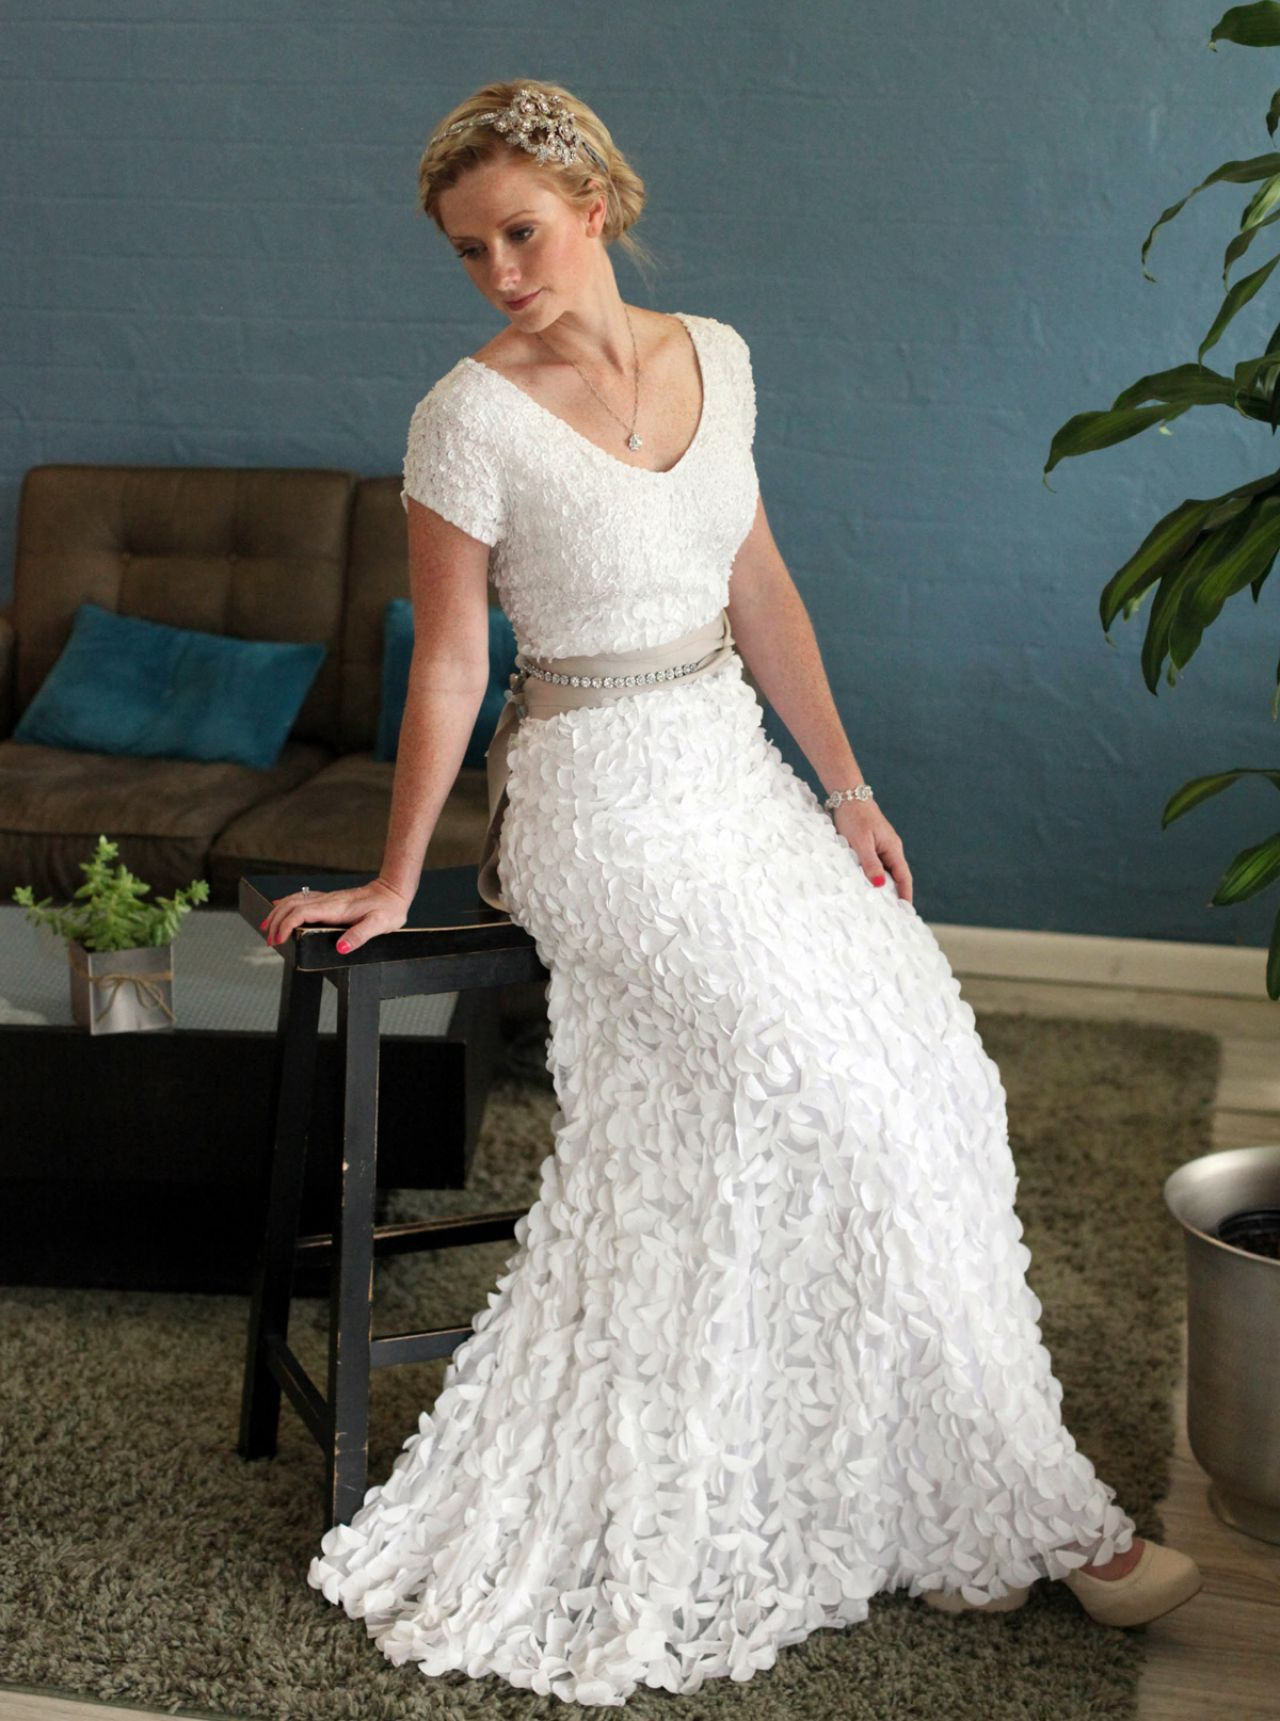 23033a1baee1 Wedding Dress for Older Women - Plus Size Dresses for Wedding Guest Check  more at http